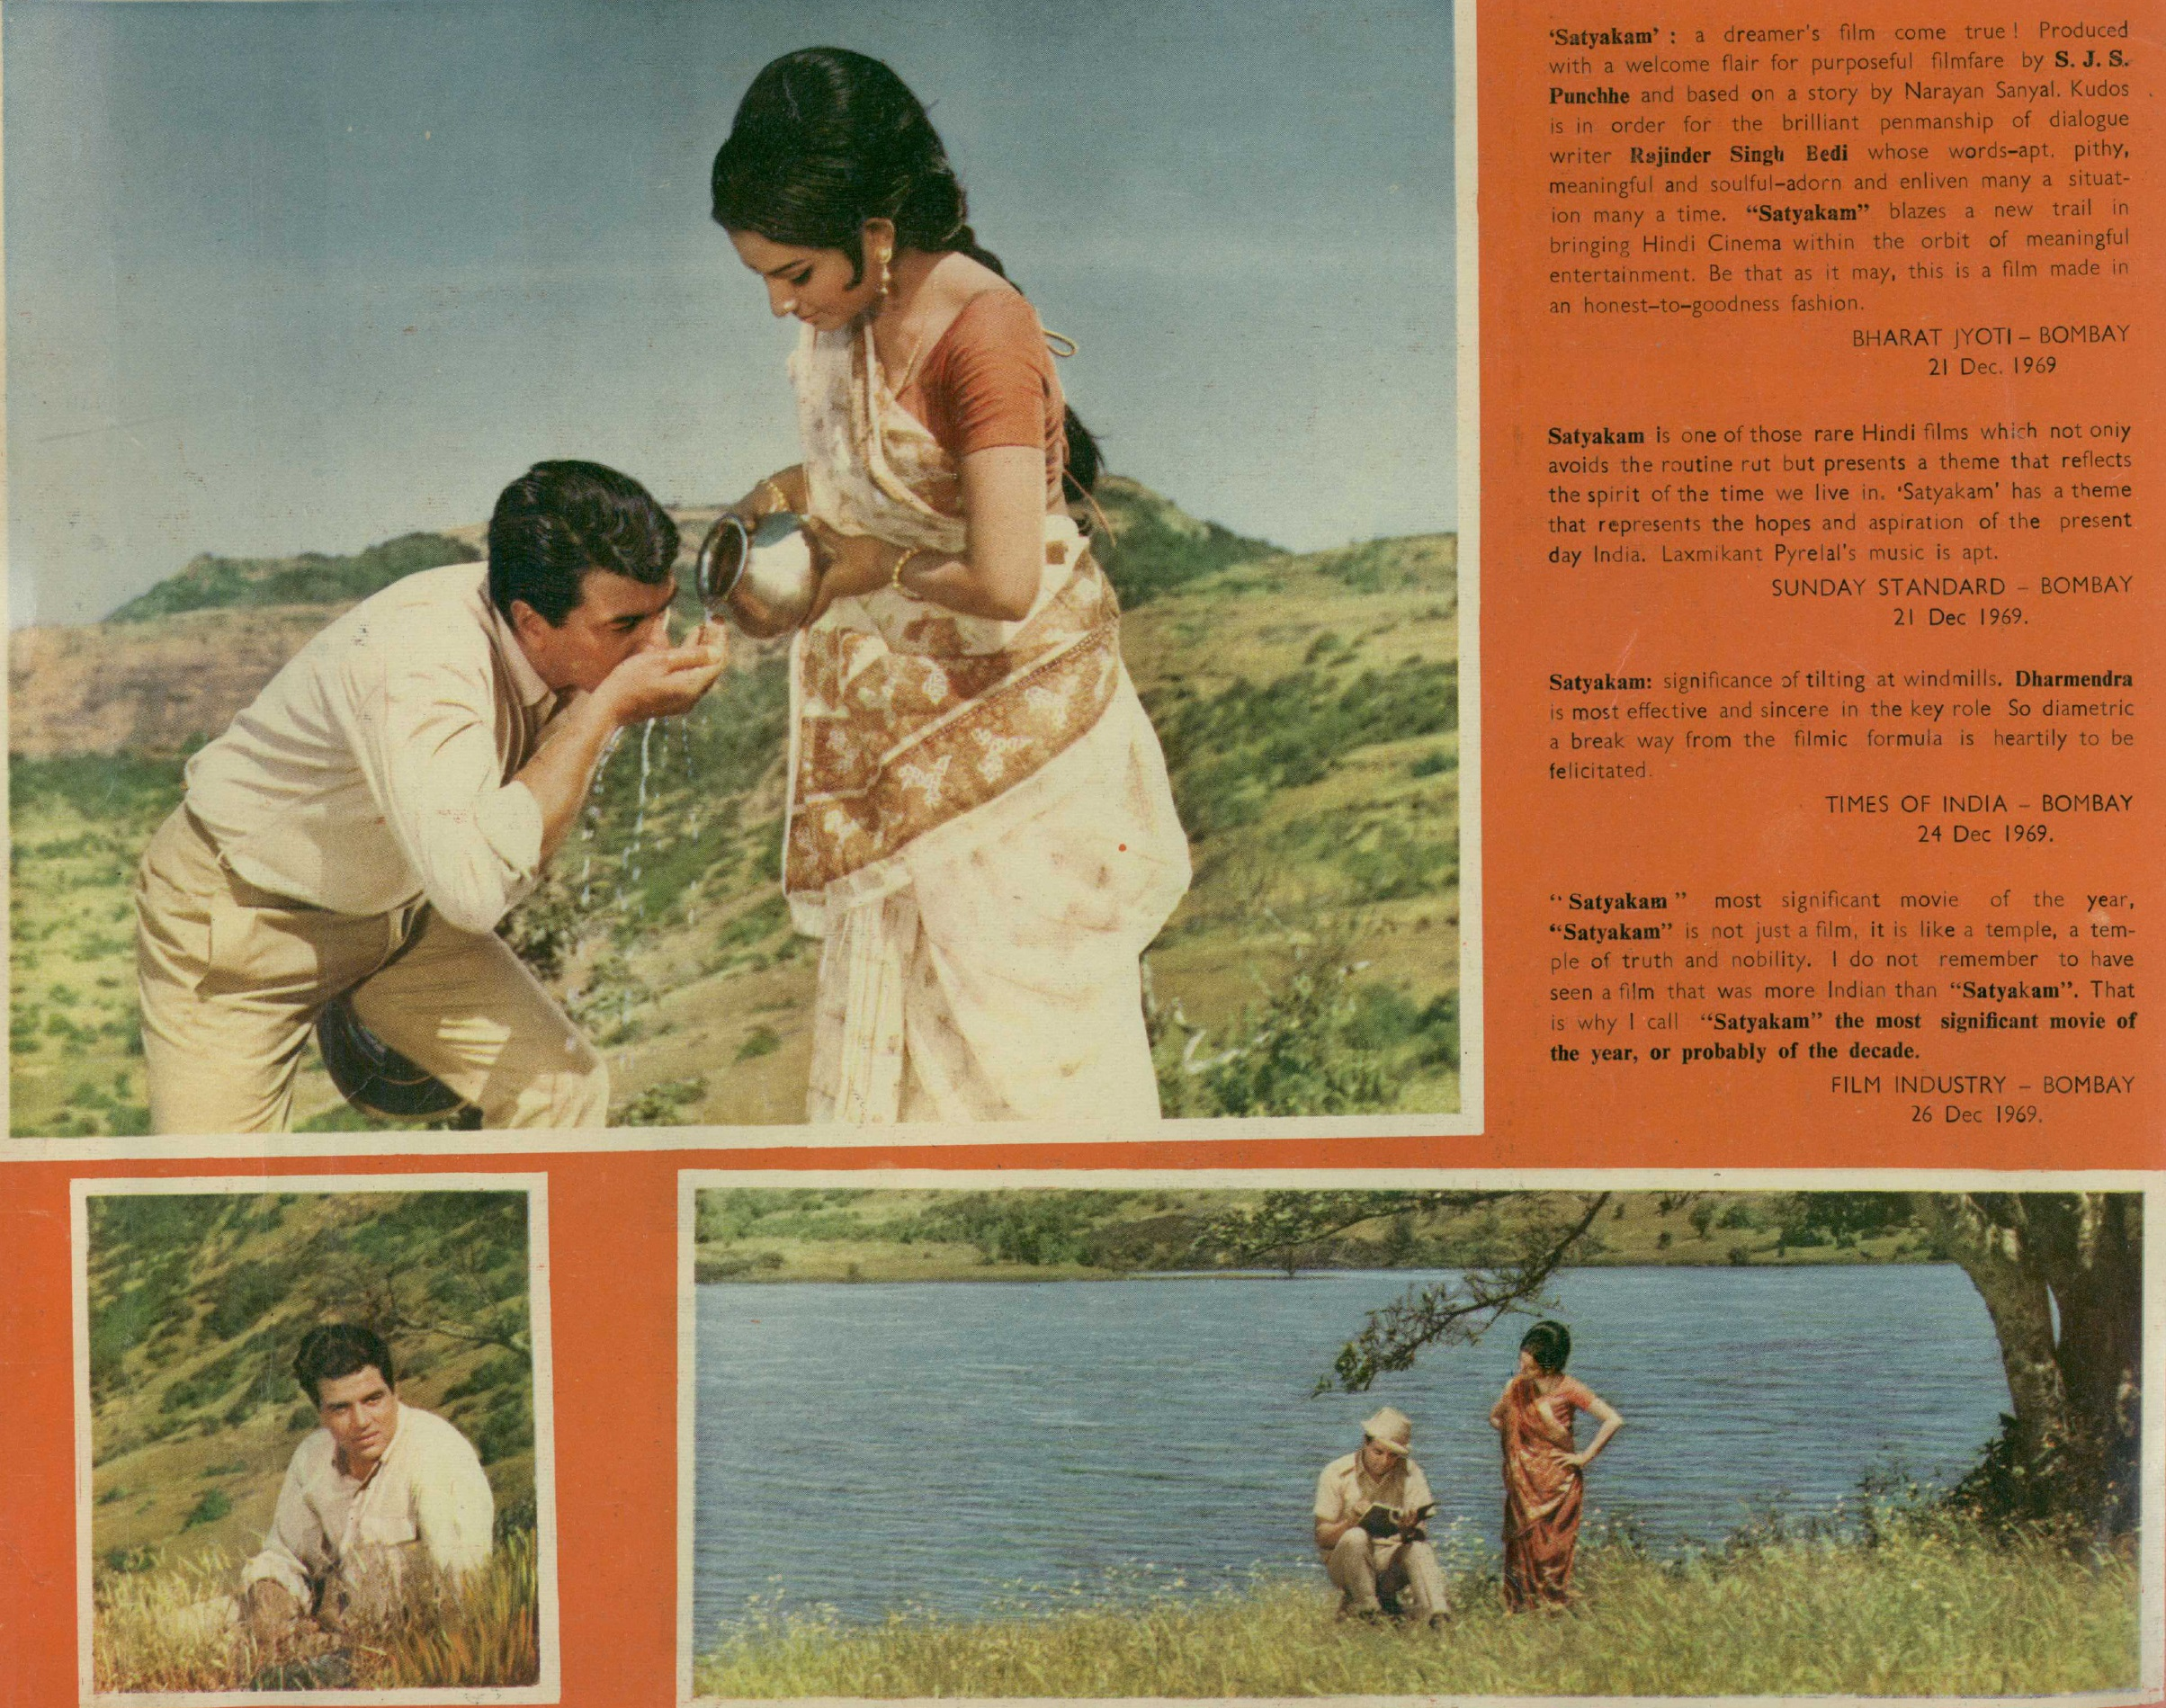 Dharmendra and Sharmila Tagore starred in the 1969 film